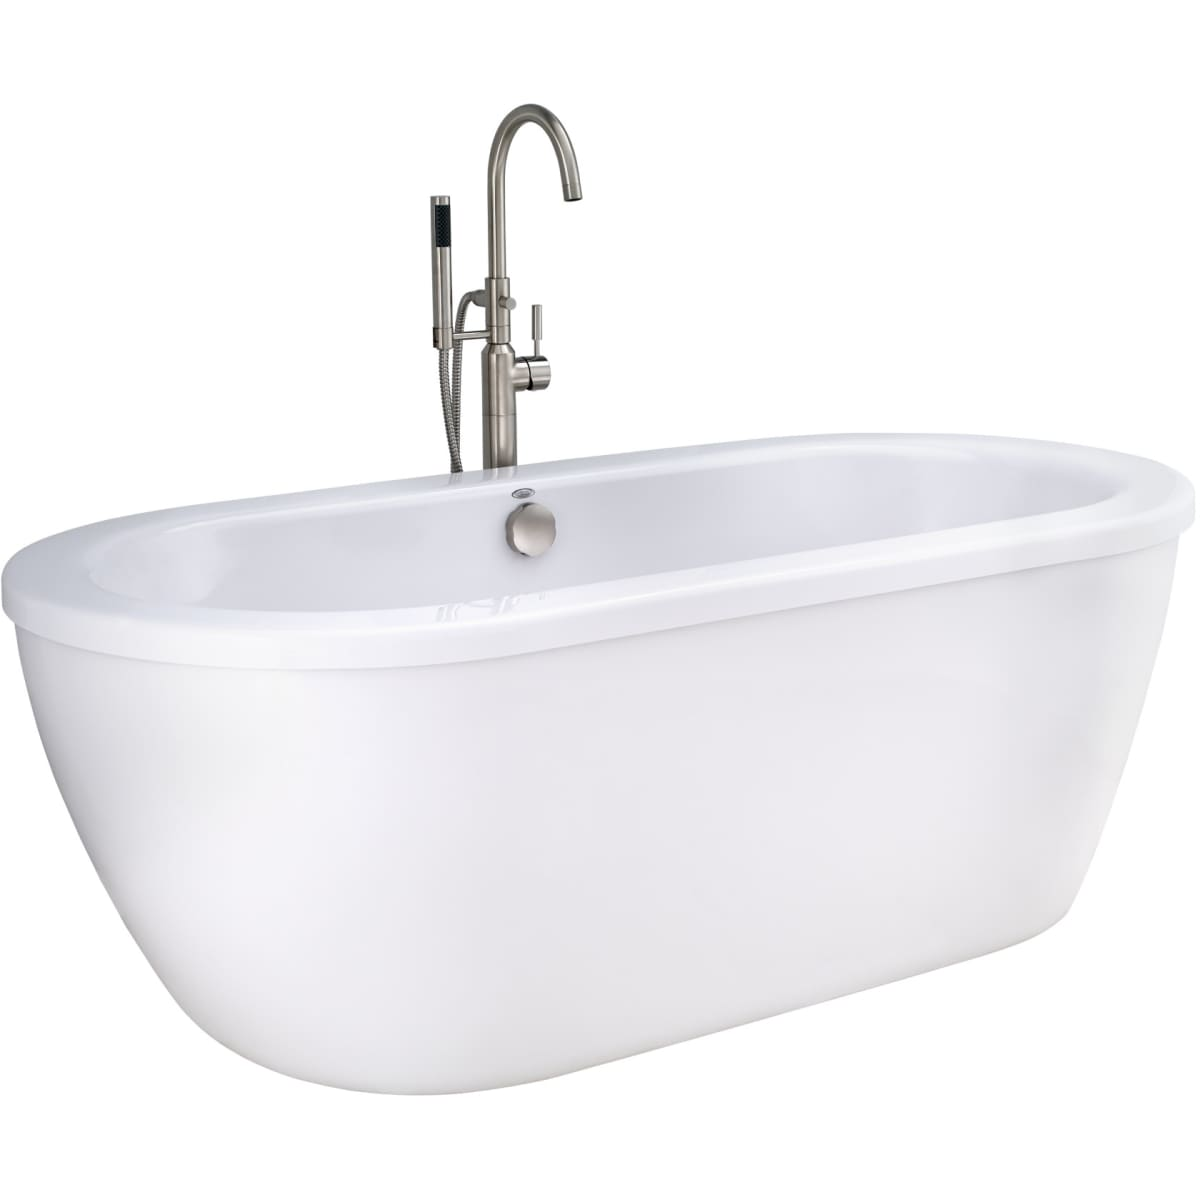 American Standard 2764.014M202.011 Arctic White with Chrome Drain ...